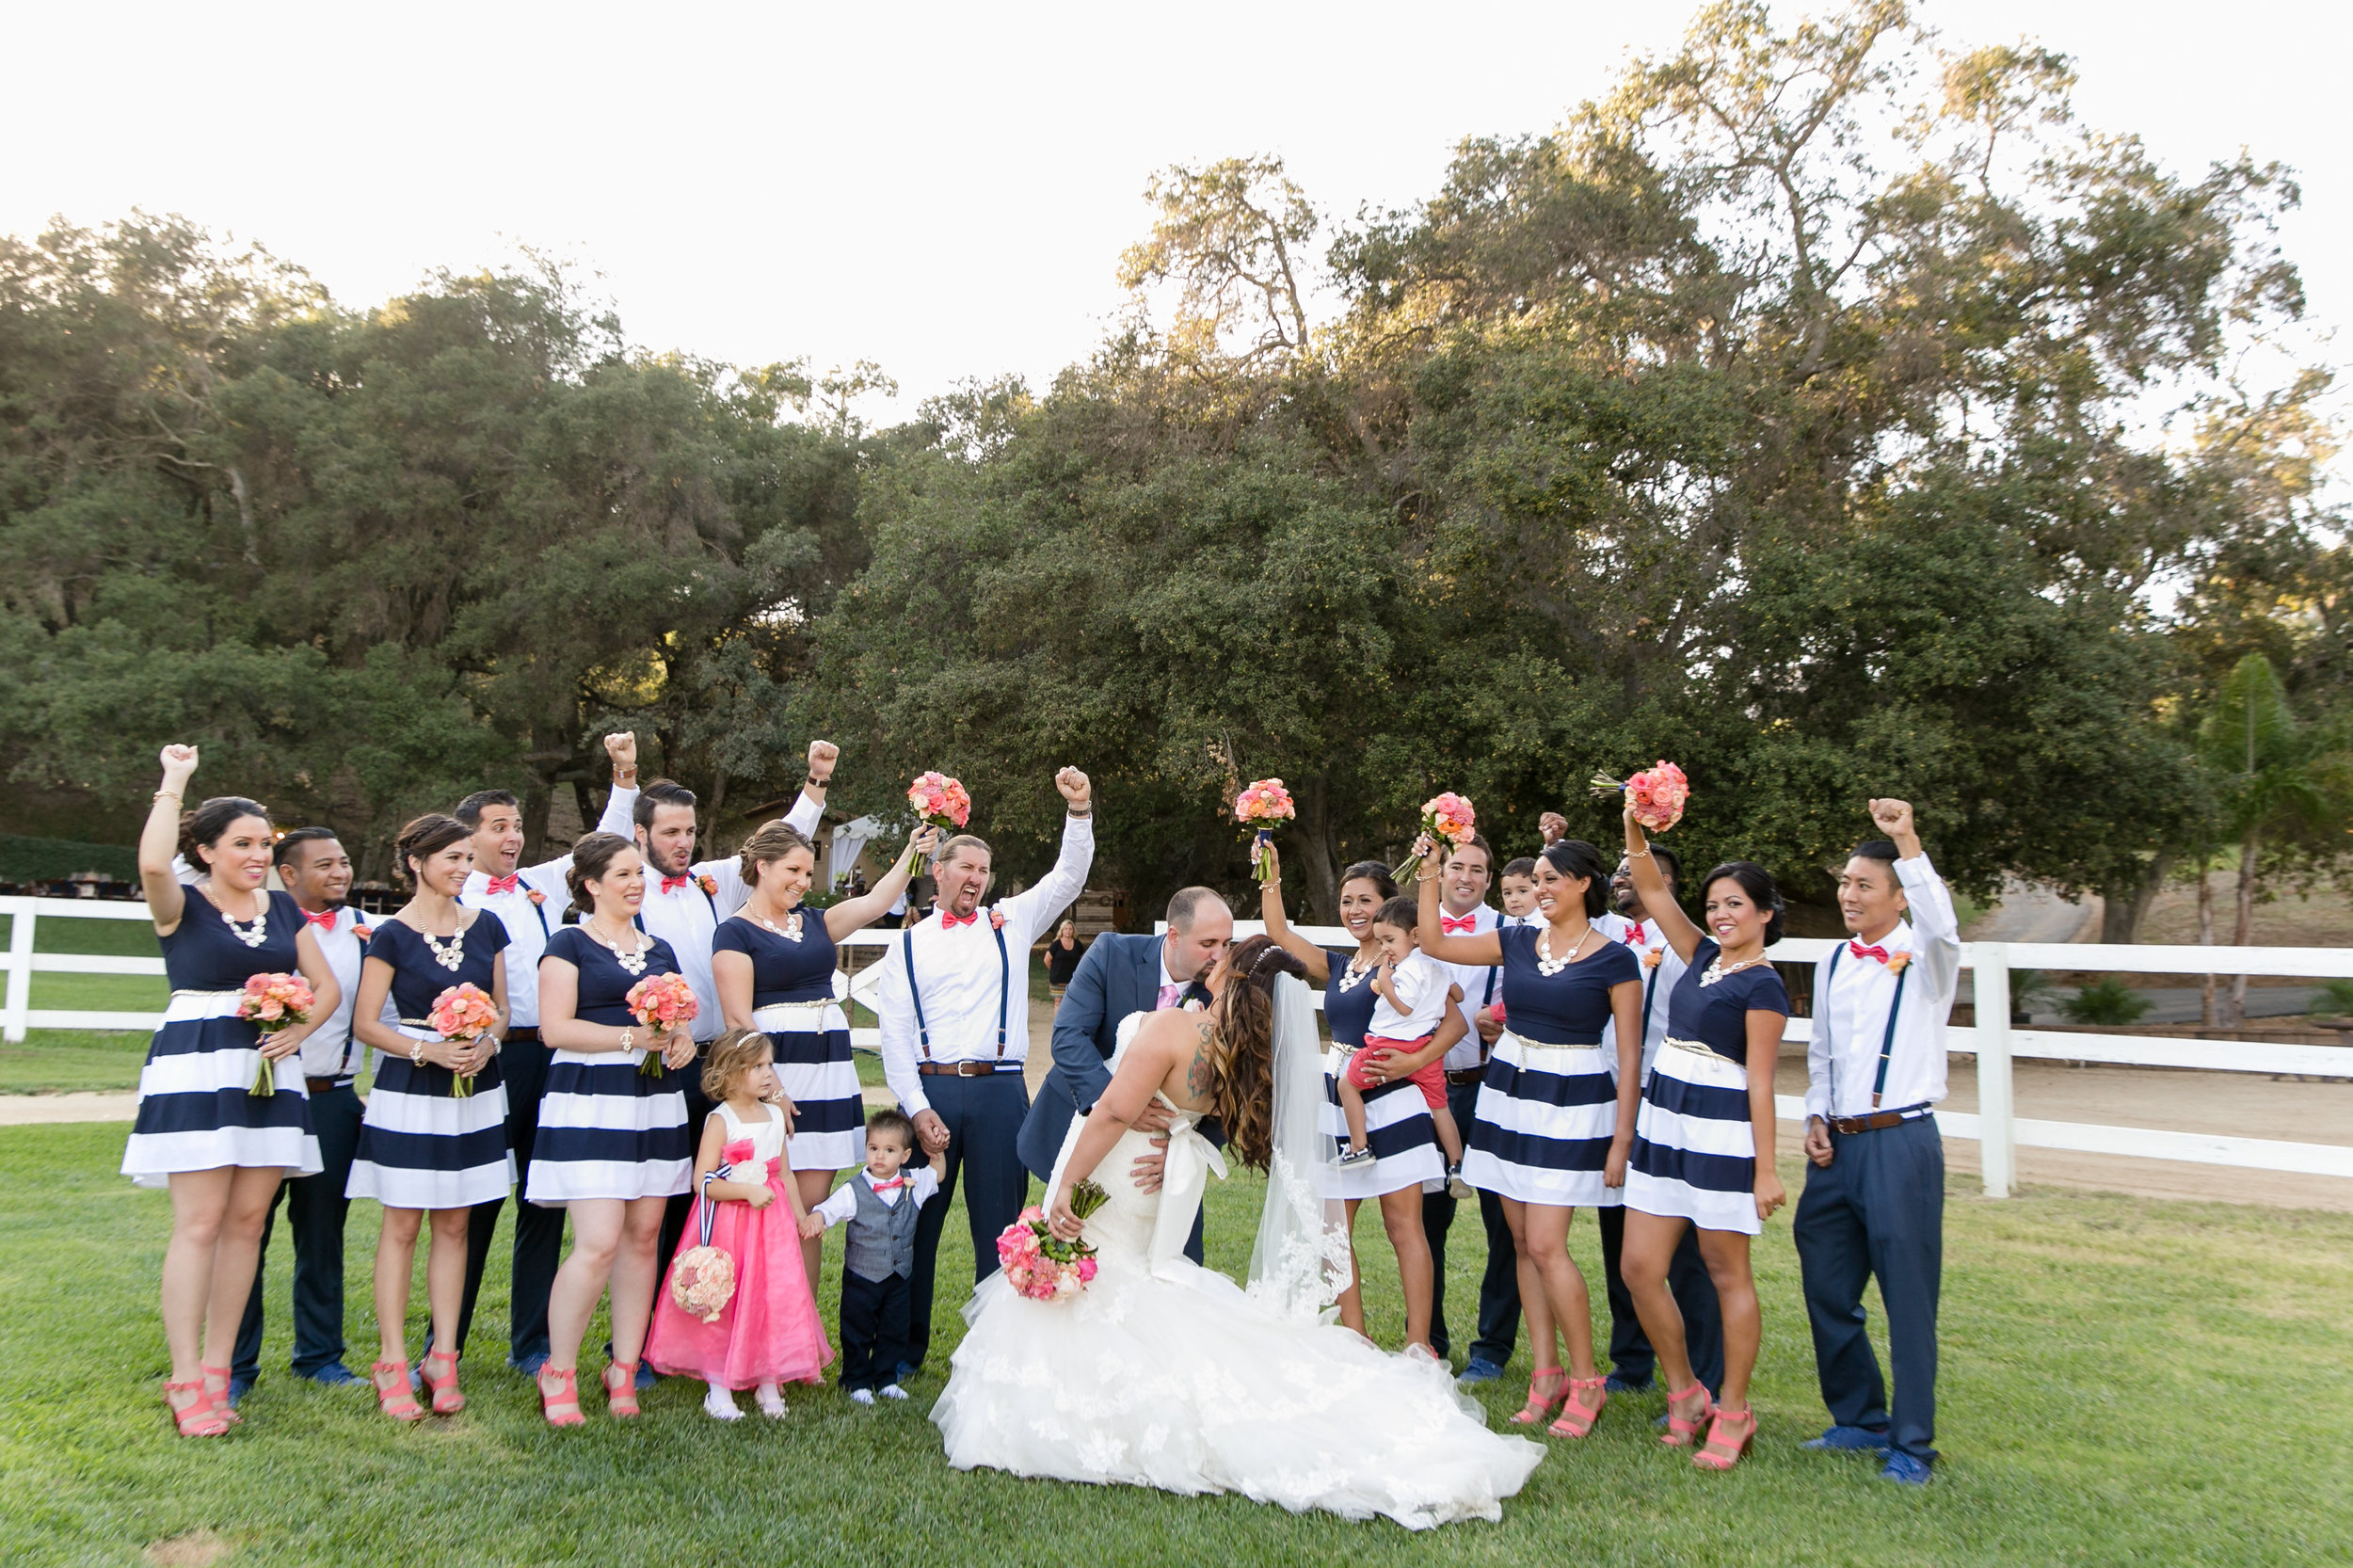 Nautical Glam Wedding in Coral and Navy |  Michelle Garibay Events | Circle Oak Ranch